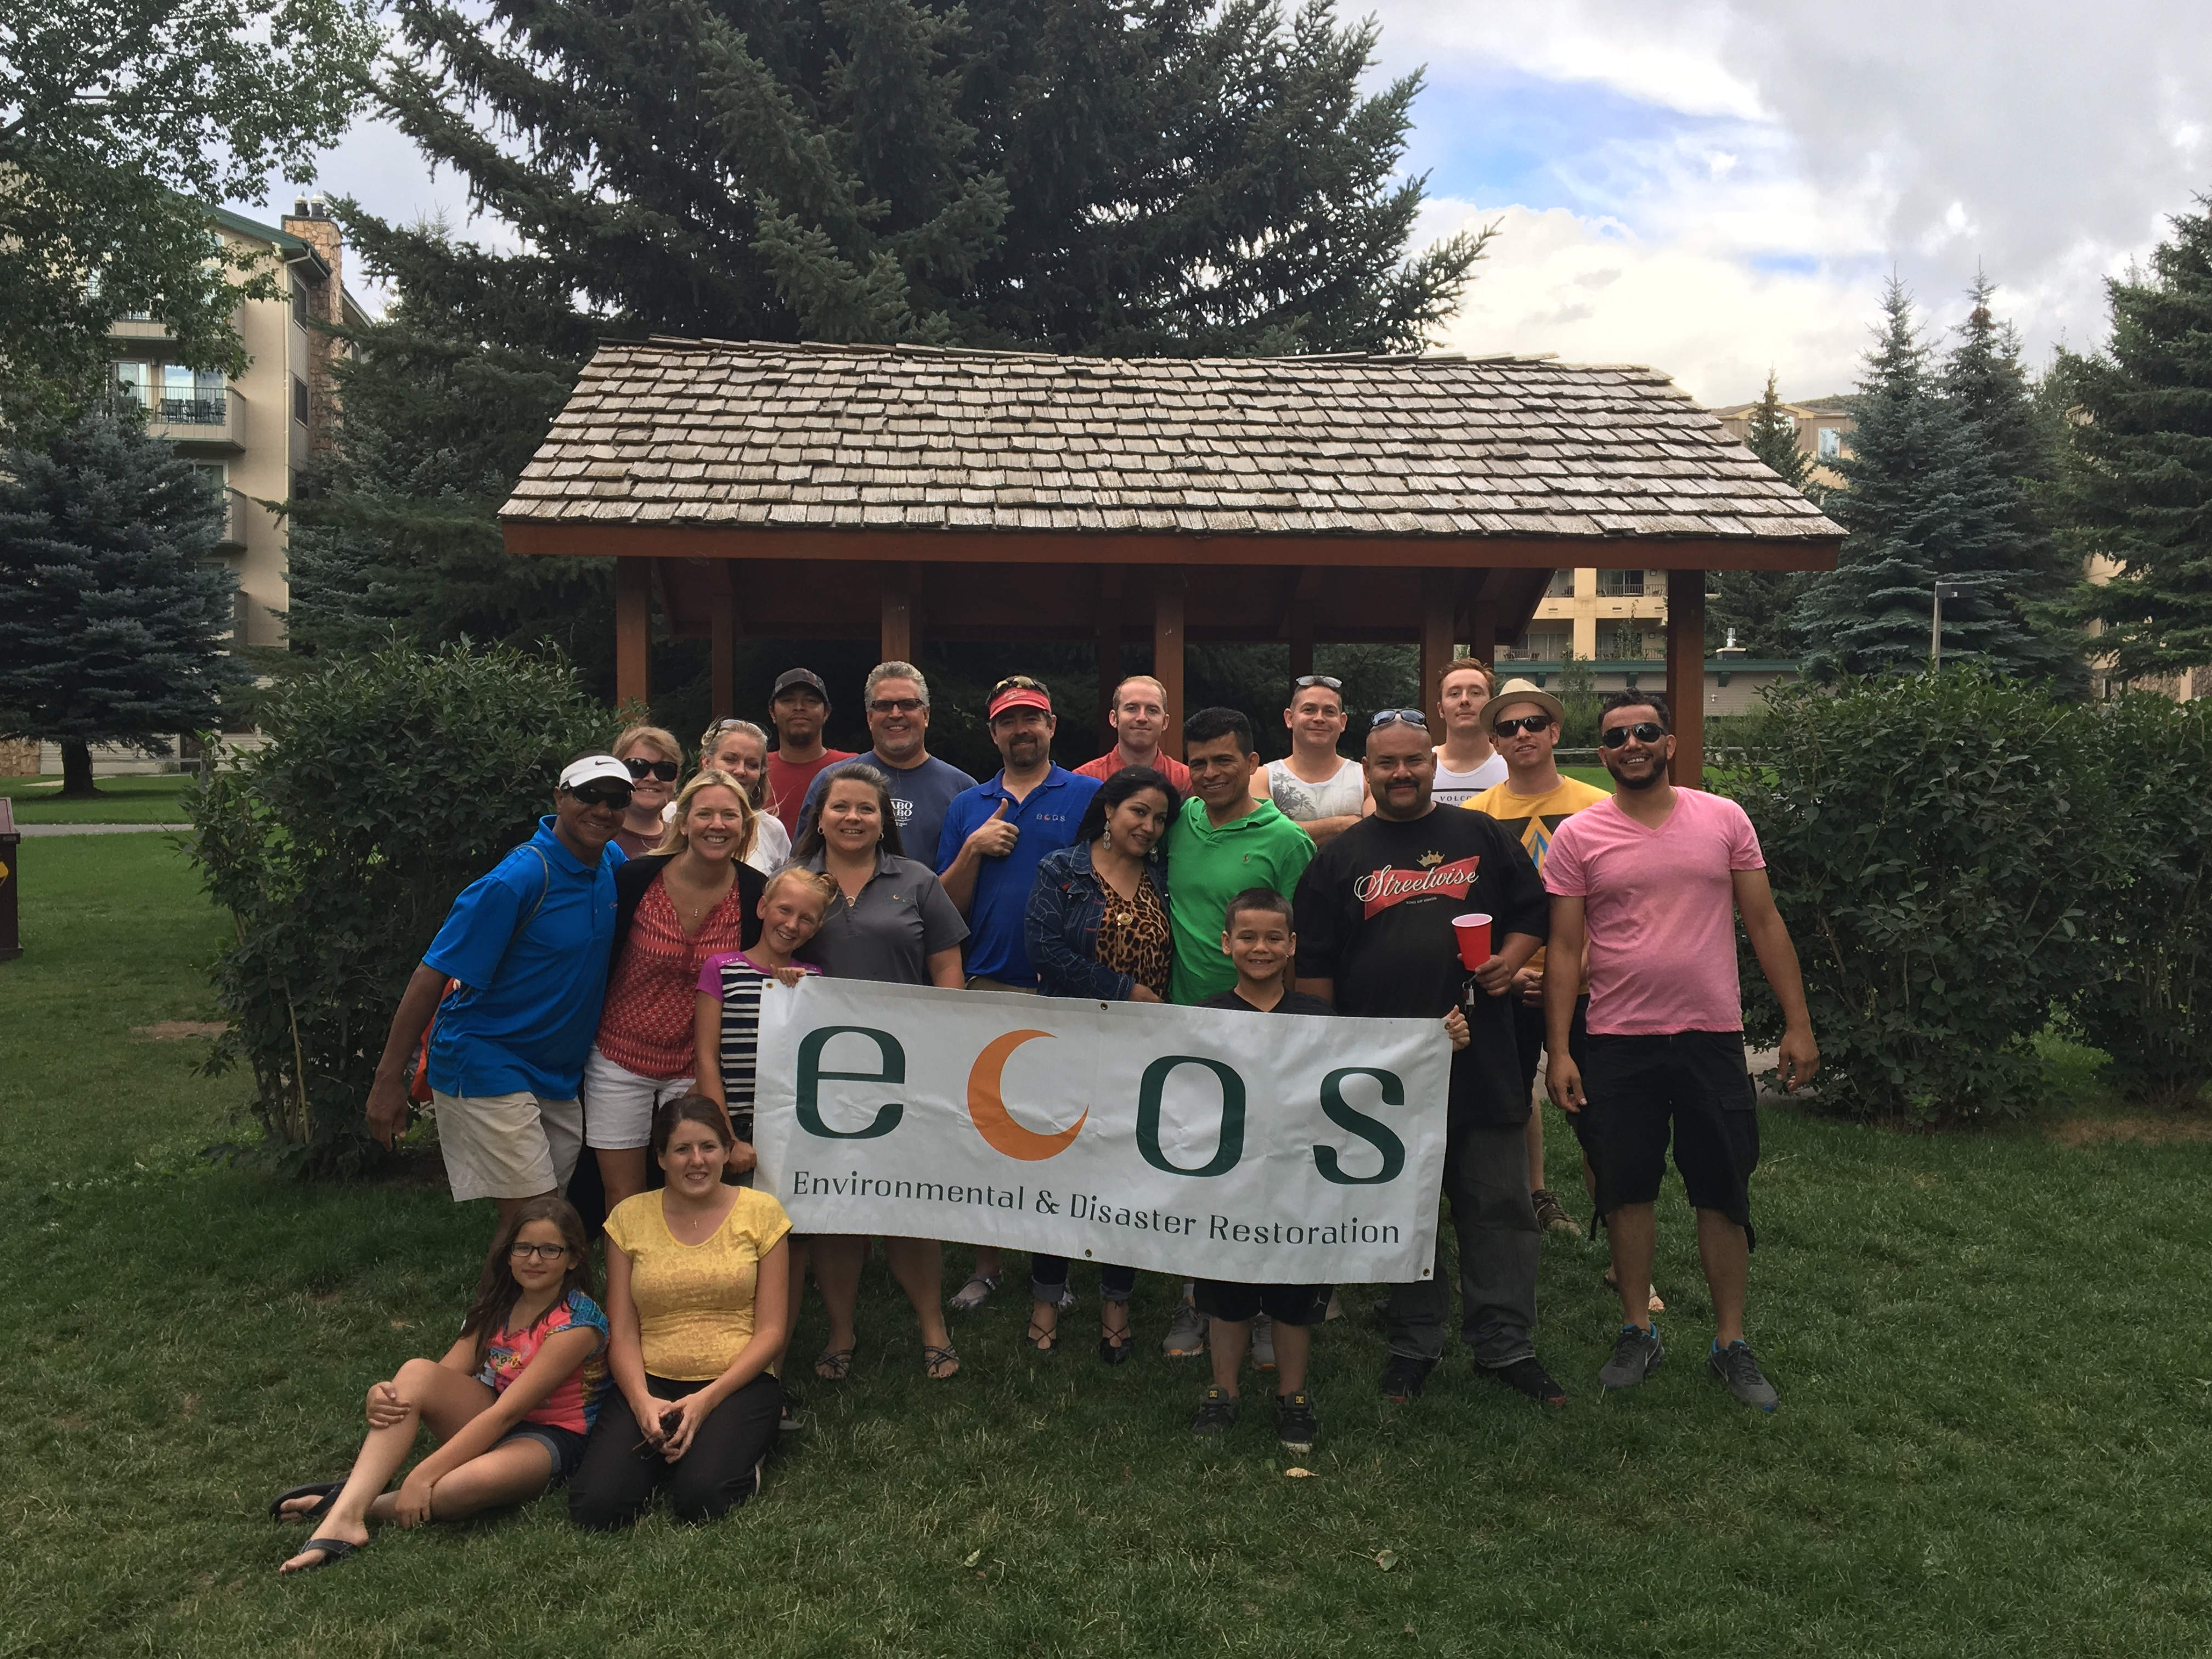 ECOS Environmental & Disaster Restoration, Inc. image 6